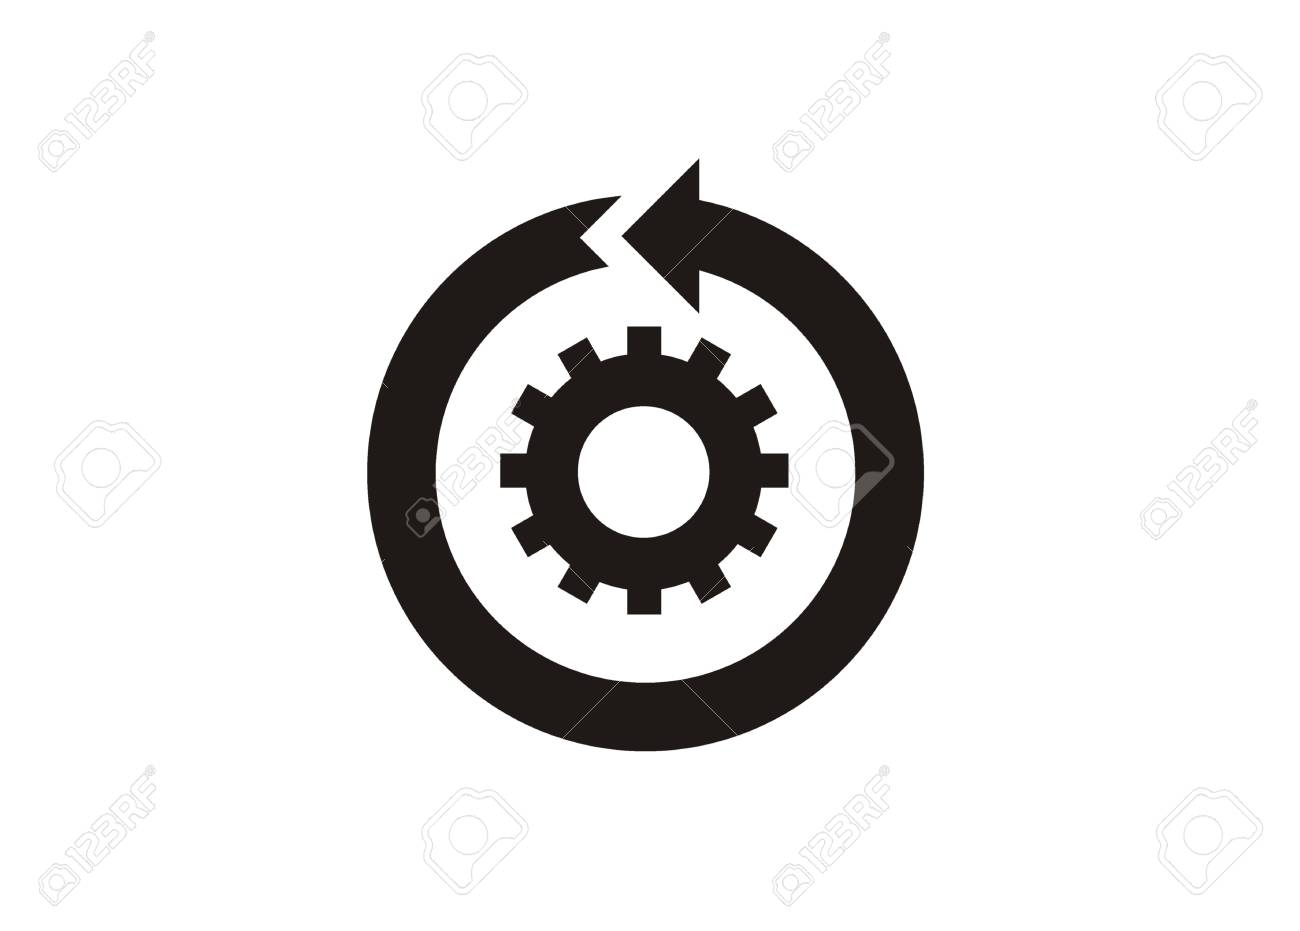 continuous improvement simple icon royalty free cliparts vectors